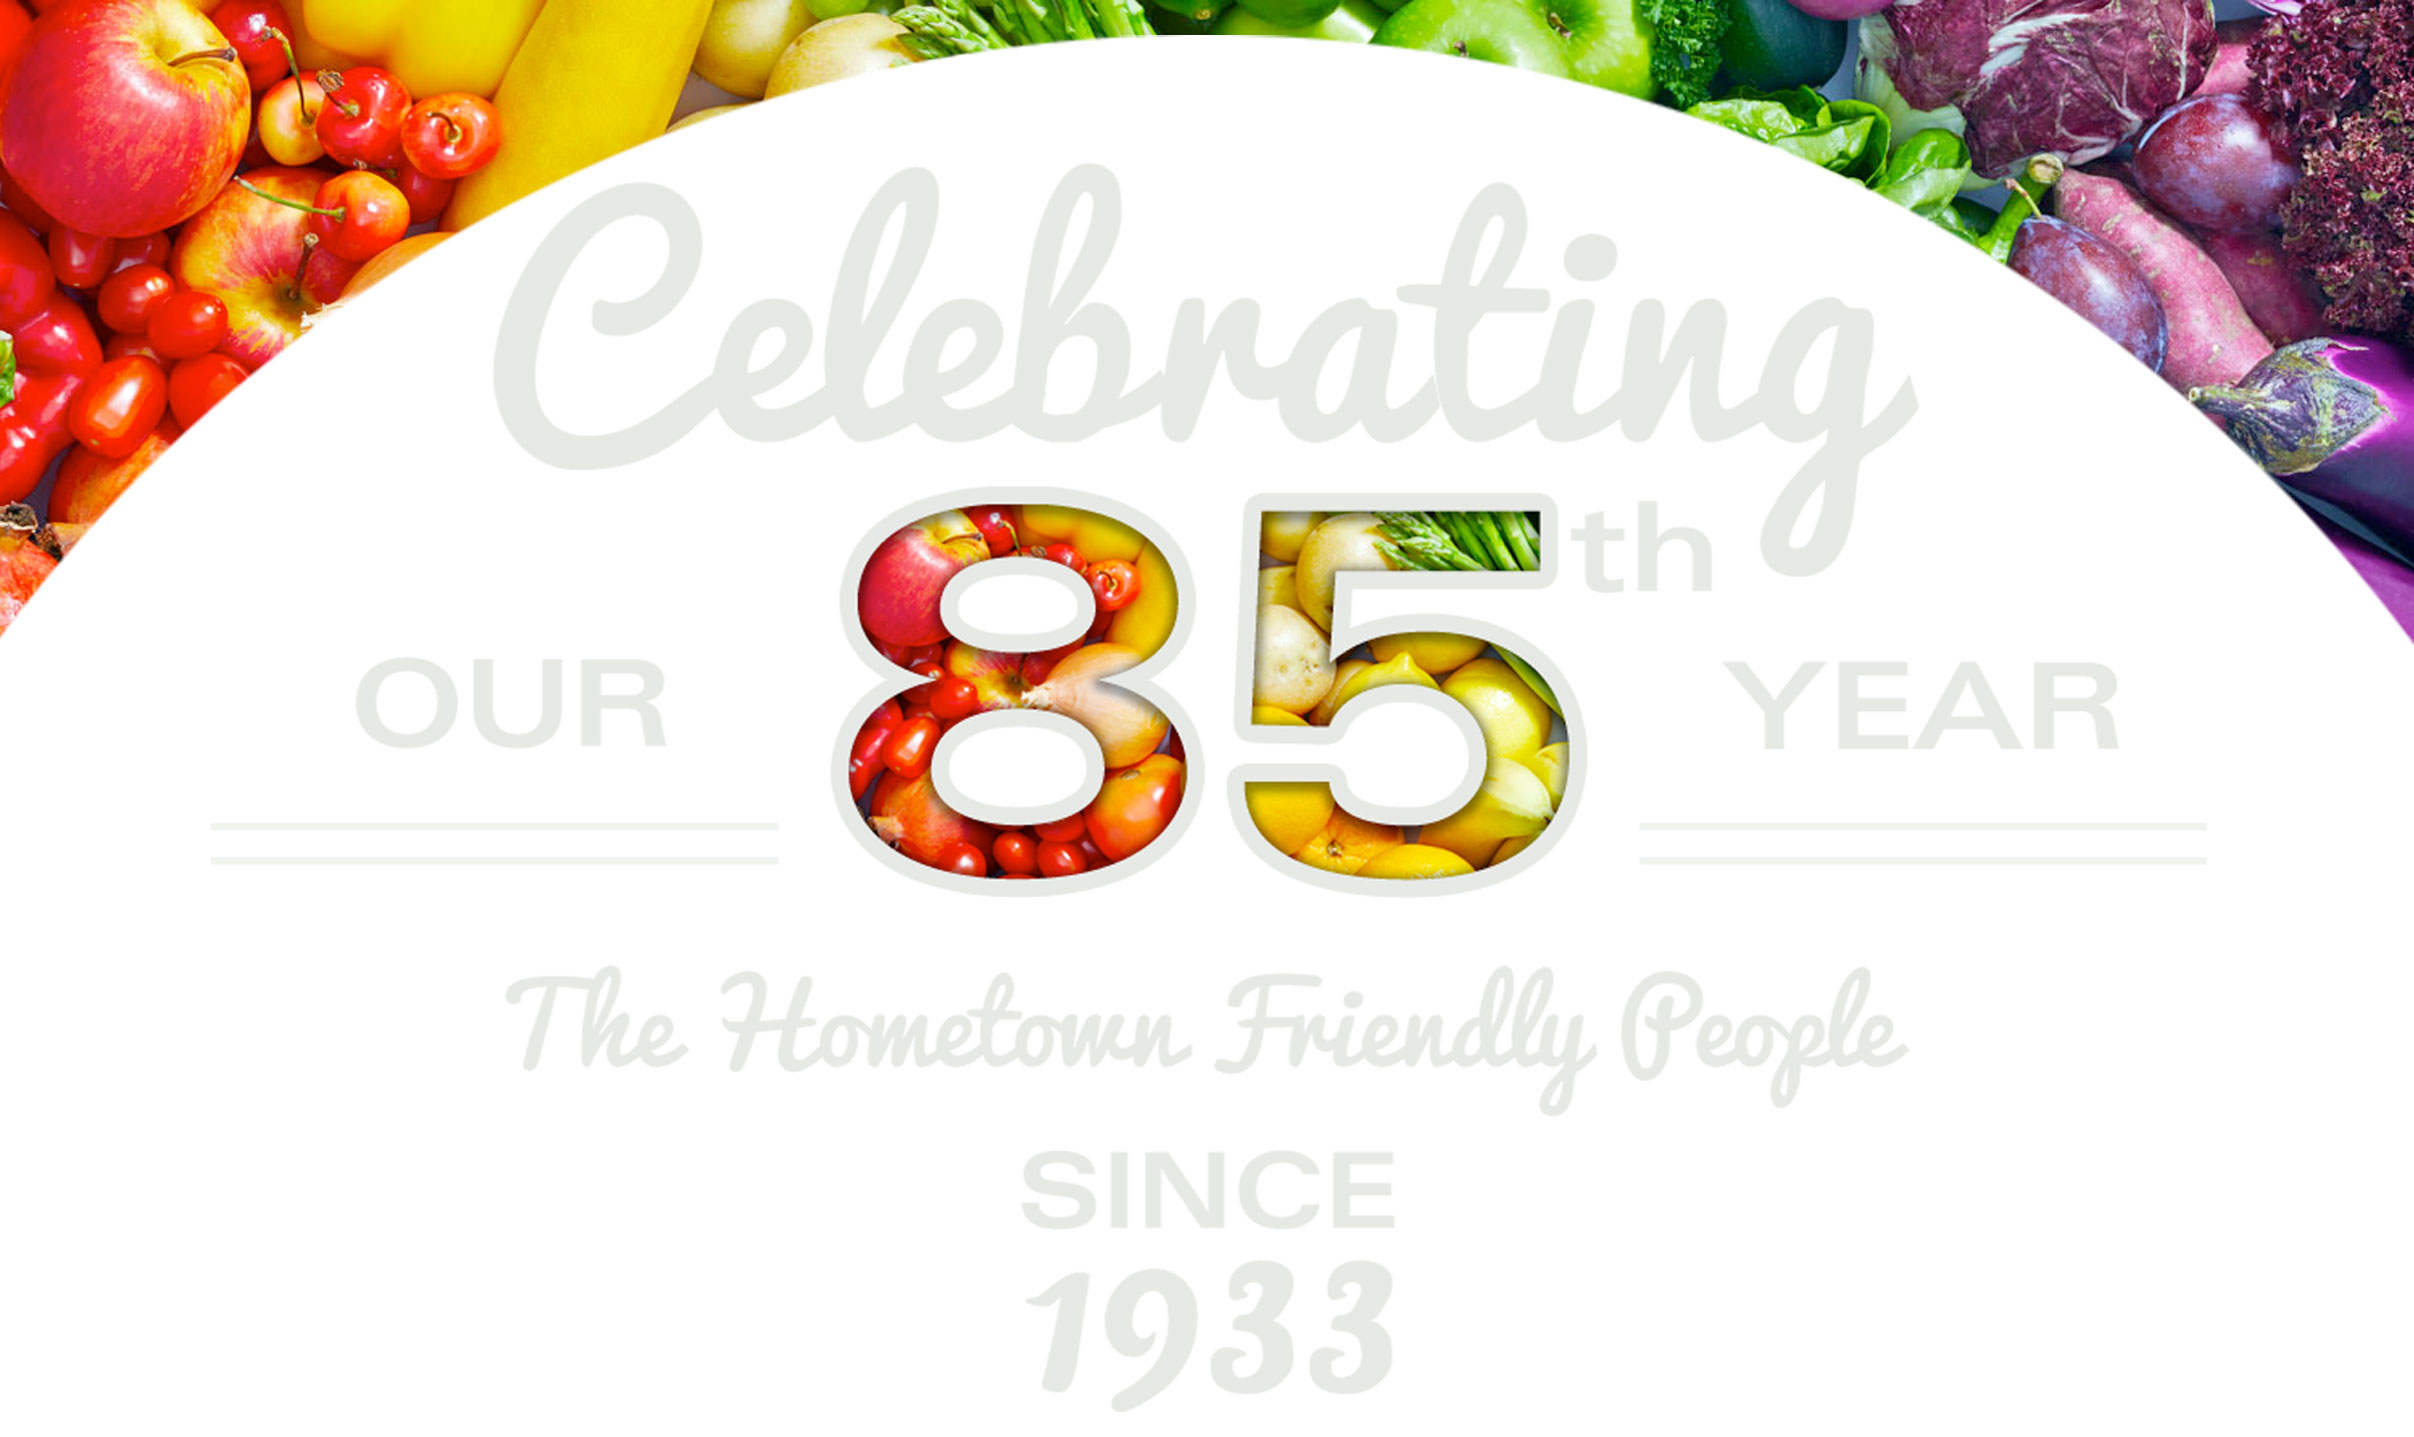 Wesselmans is celebrating our 85th year! The hometown friendly people since 1933.